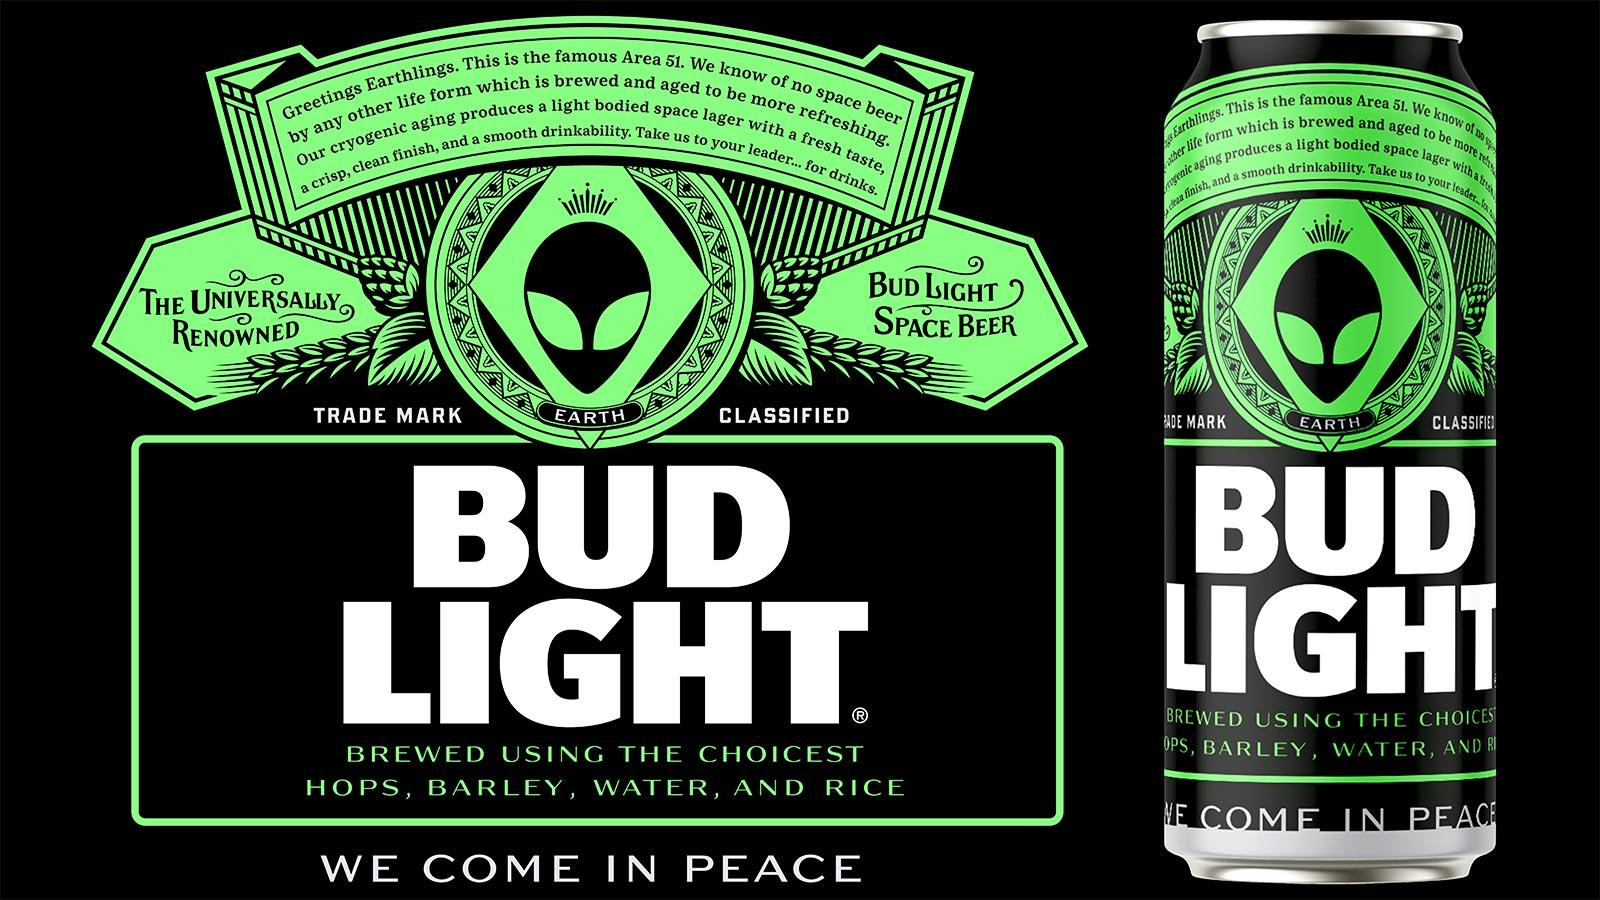 Bud Light Area 51 beer